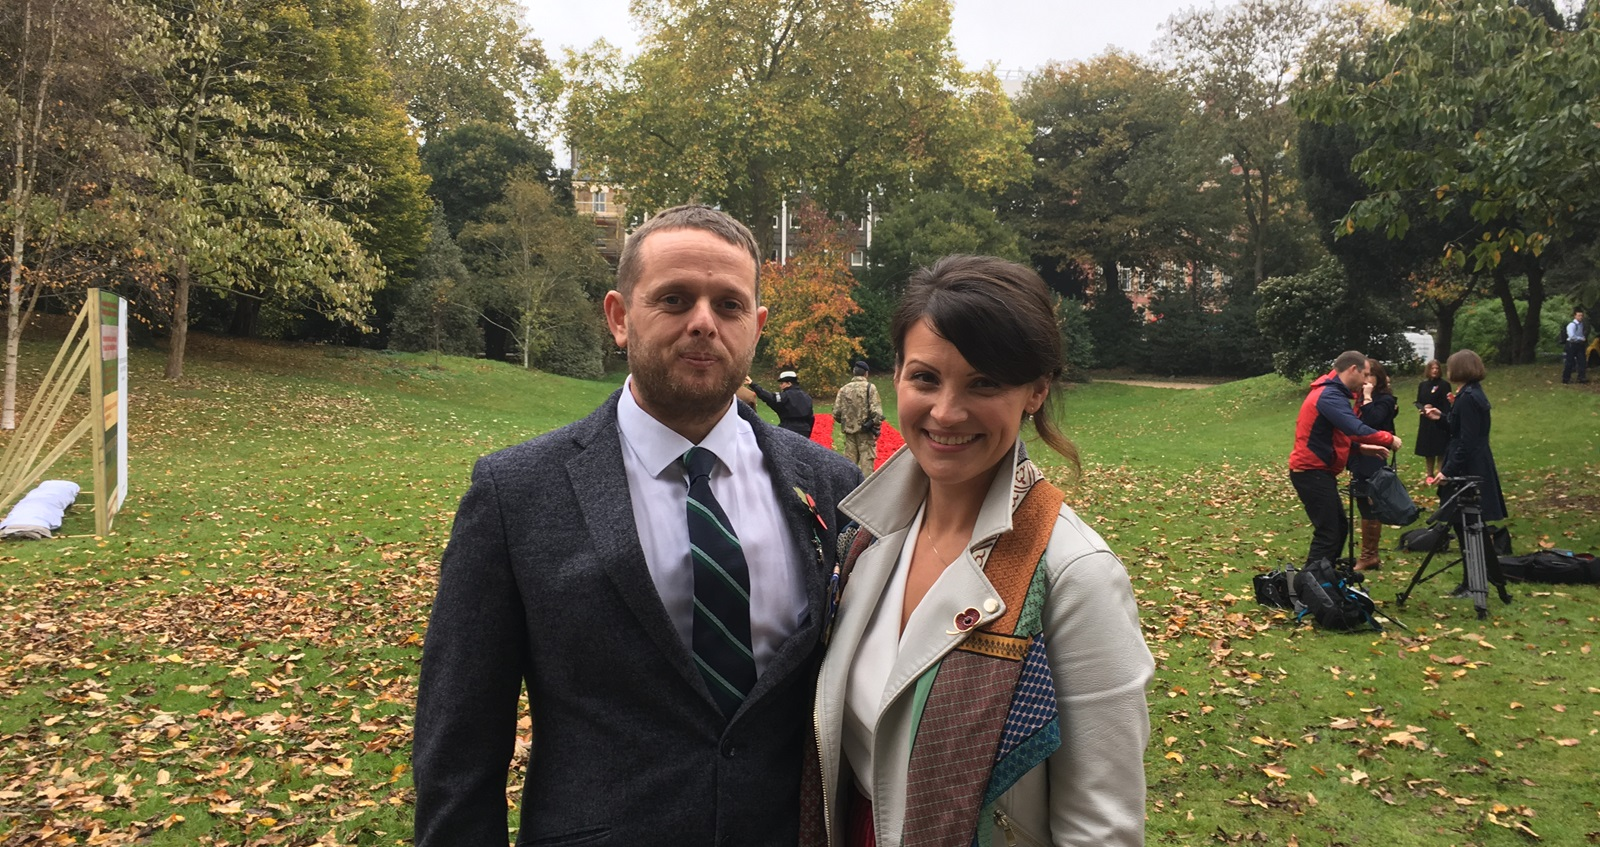 Mike and Linda Kiff at Poppy Appeal launch in 2017